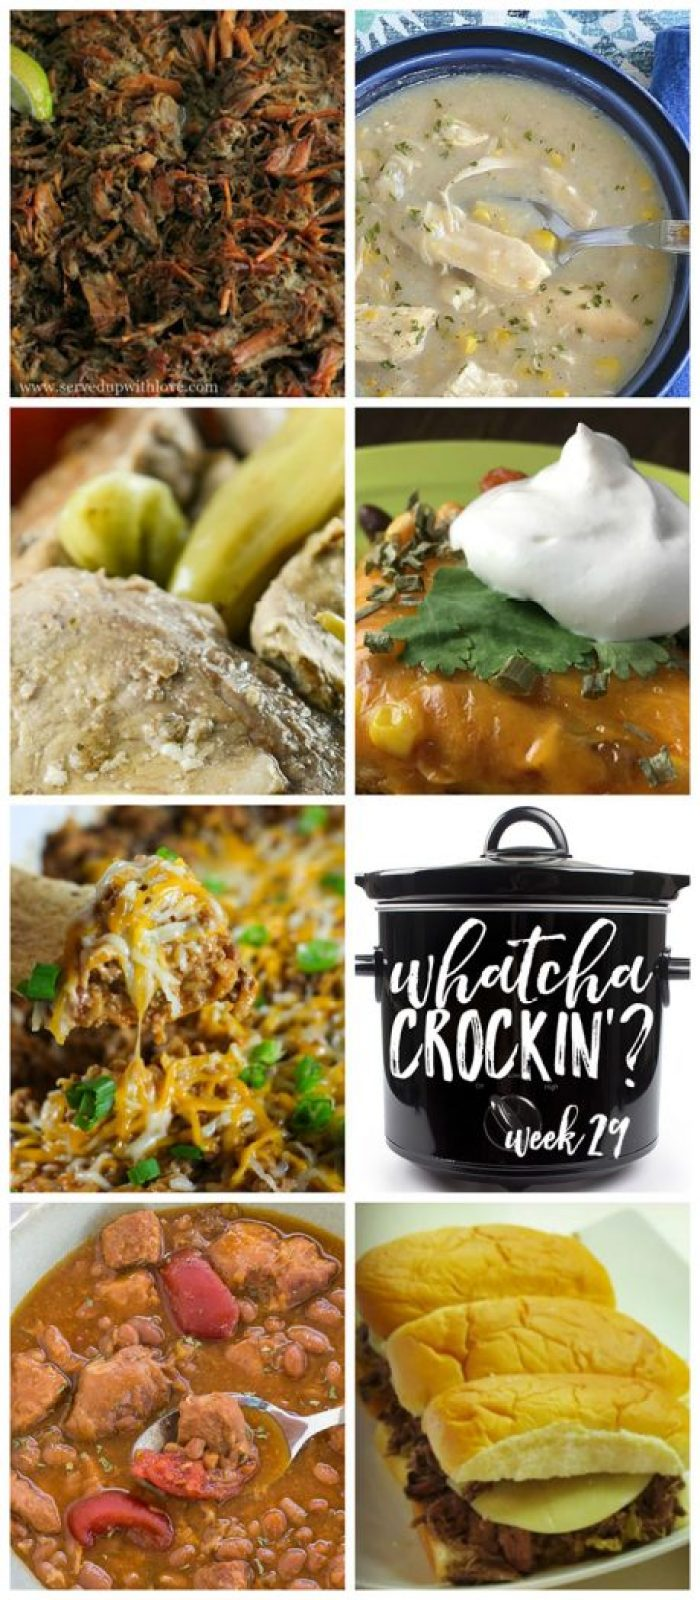 This week's Whatcha Crockin' crock pot recipes include Crock Pot Spicy Enchilada Stack, Crock Pot Pork Baked Bean Soup, Crock Pot Beef Enchilada and Rice Dip, Slow Cooker Carnitas, Slow Cooker Italian Beef, Crock Pot Chicken Corn Chowder, Crock Pot Mississippi Pork Chops and much more!